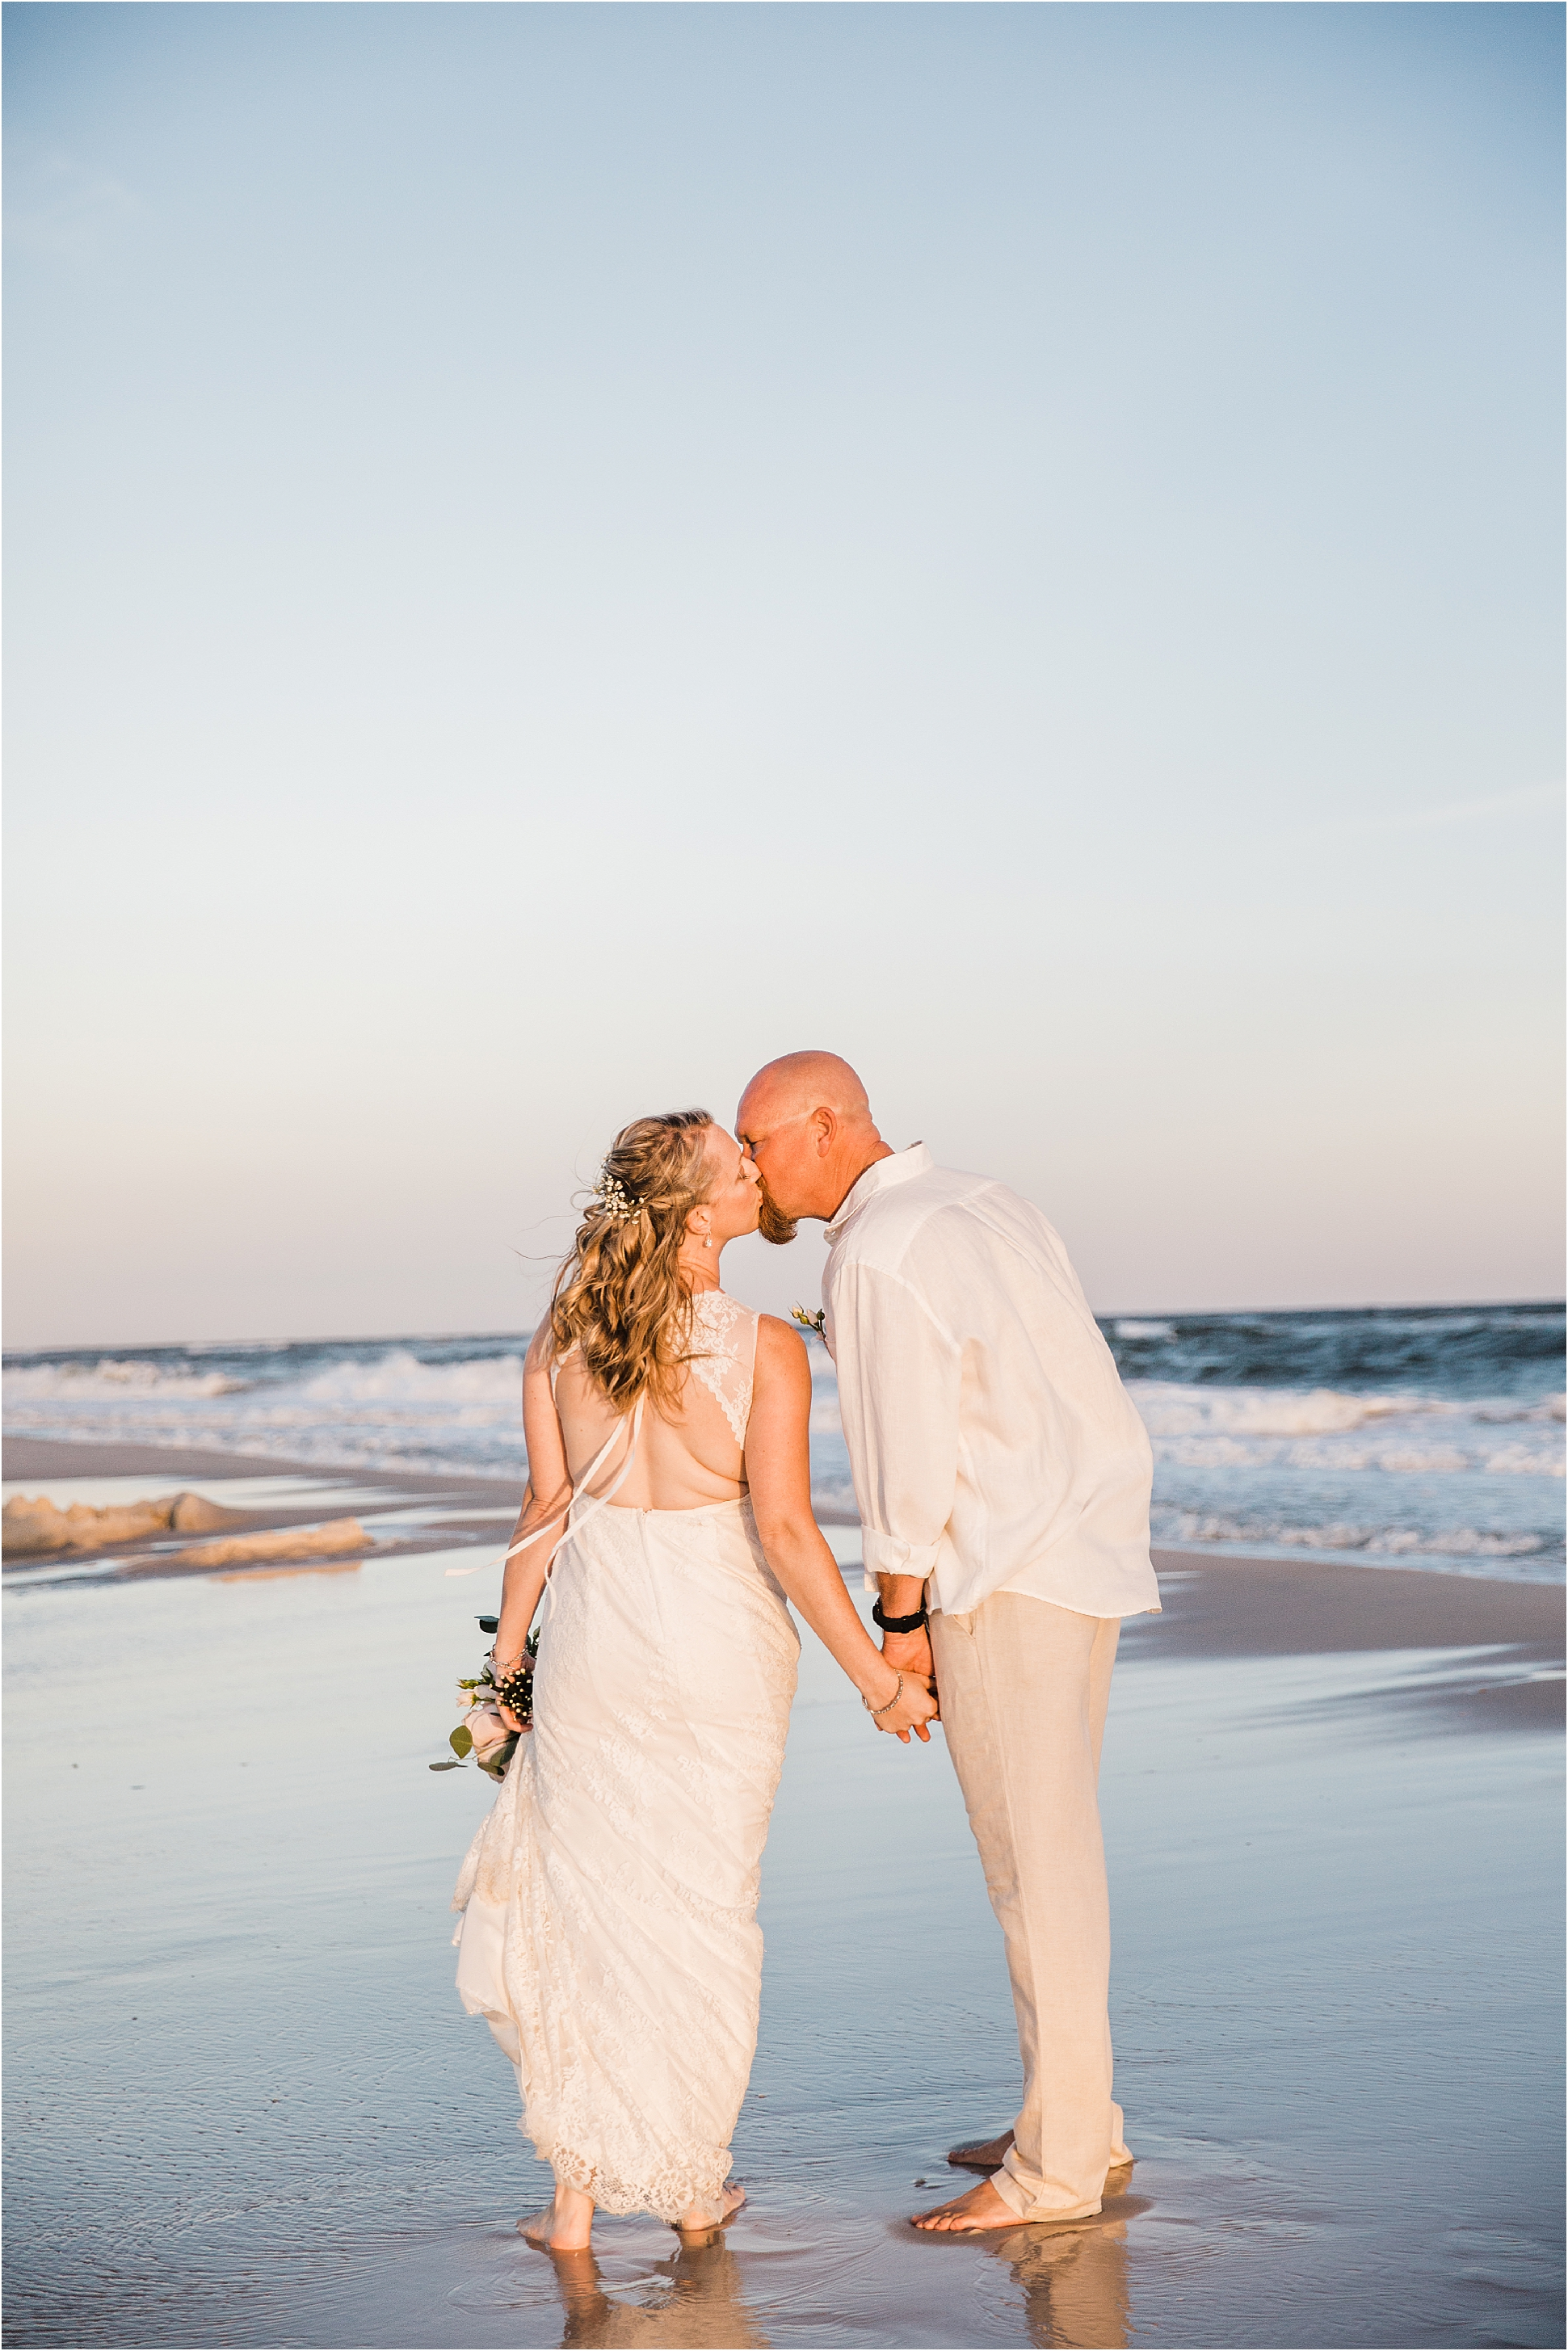 Sunset Beach Pictures Ideas